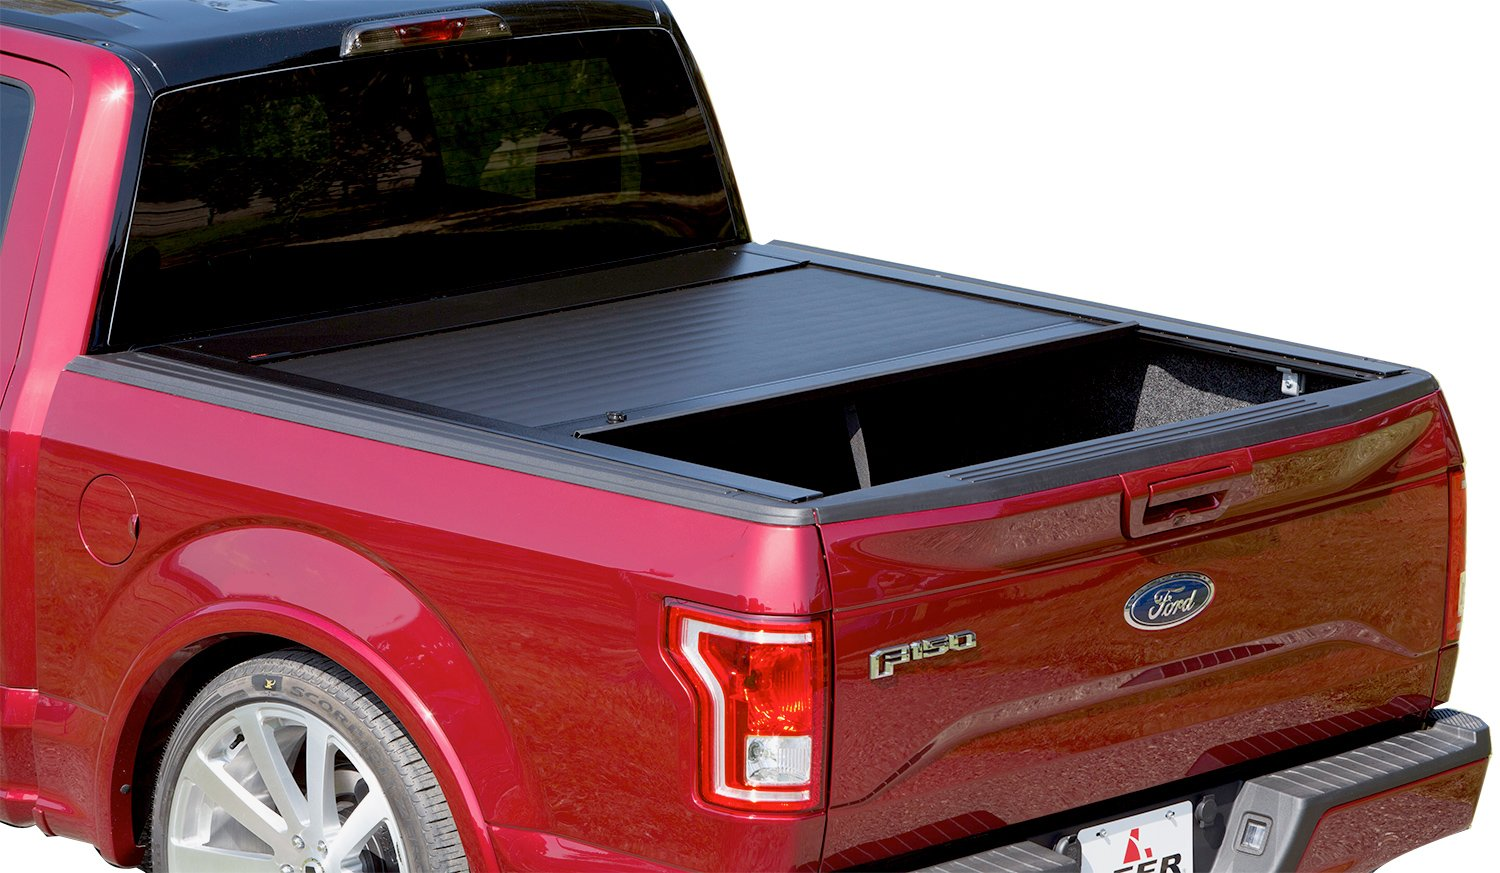 2008 2016 Ford F250 Pace Edwards Jackrabbit Tonneau Cover Pace